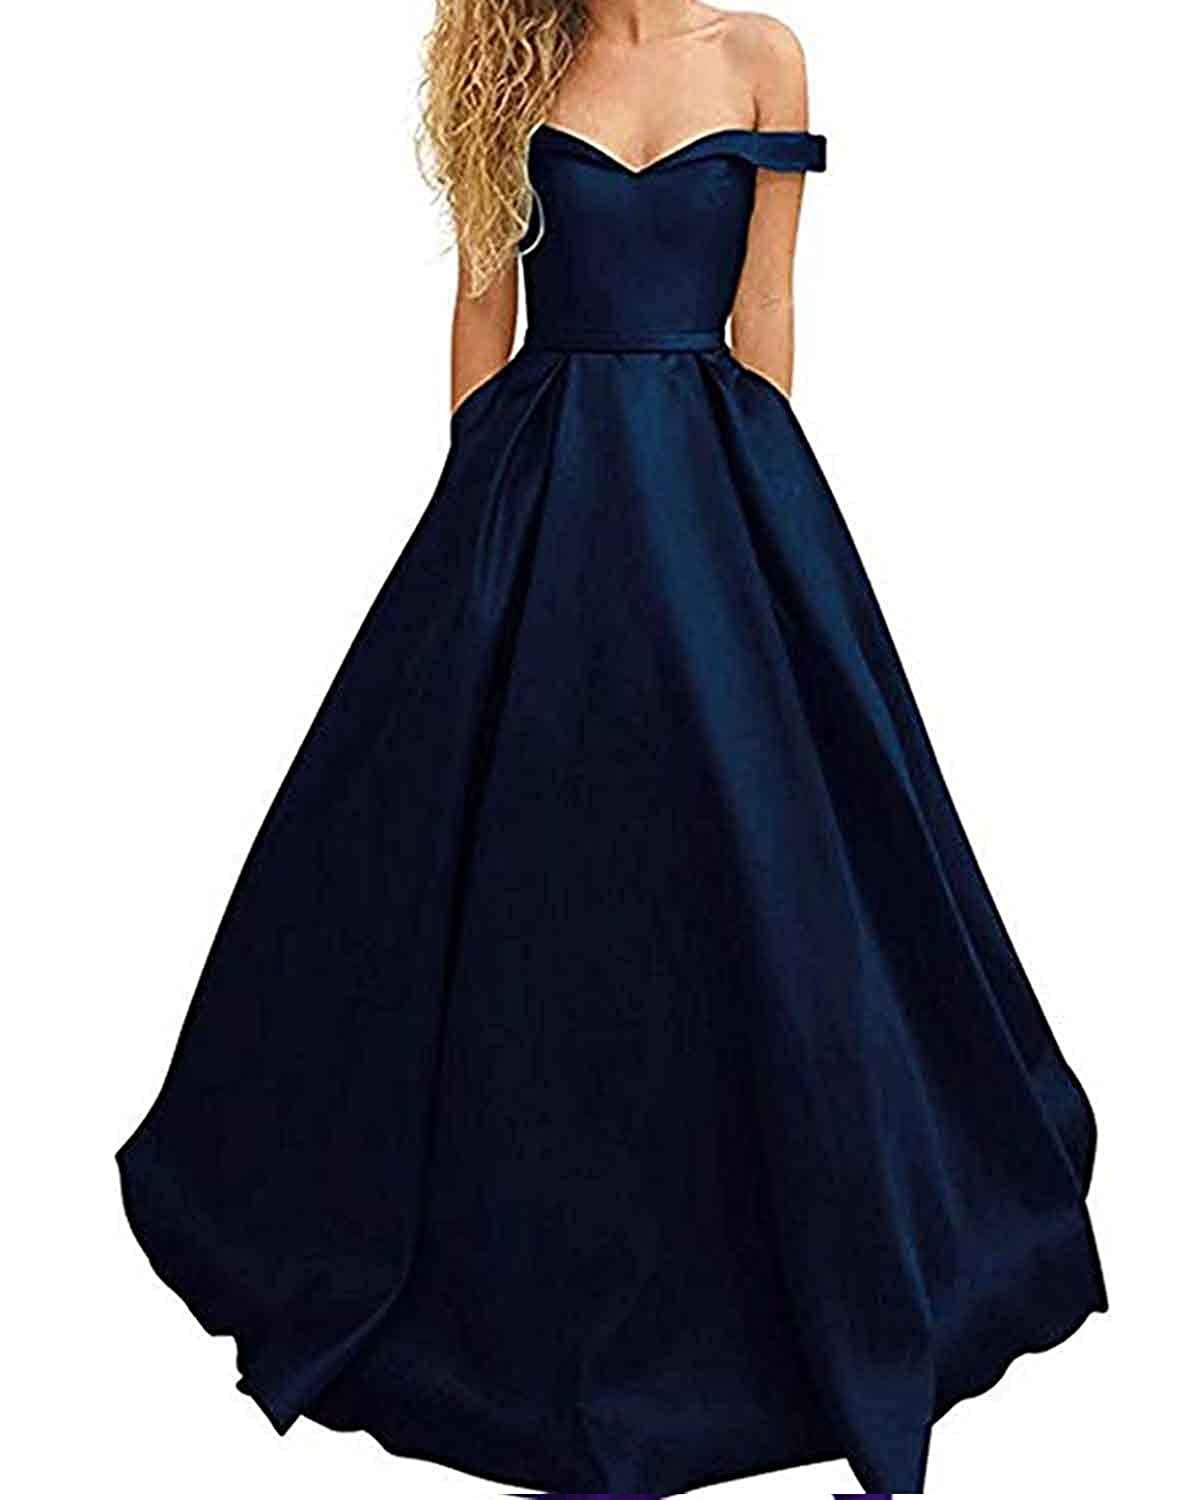 Navy bluee WHLWHL OffTheShoulder Long Prom Dress Party Gowns for Women 2019 Evening with Pockets